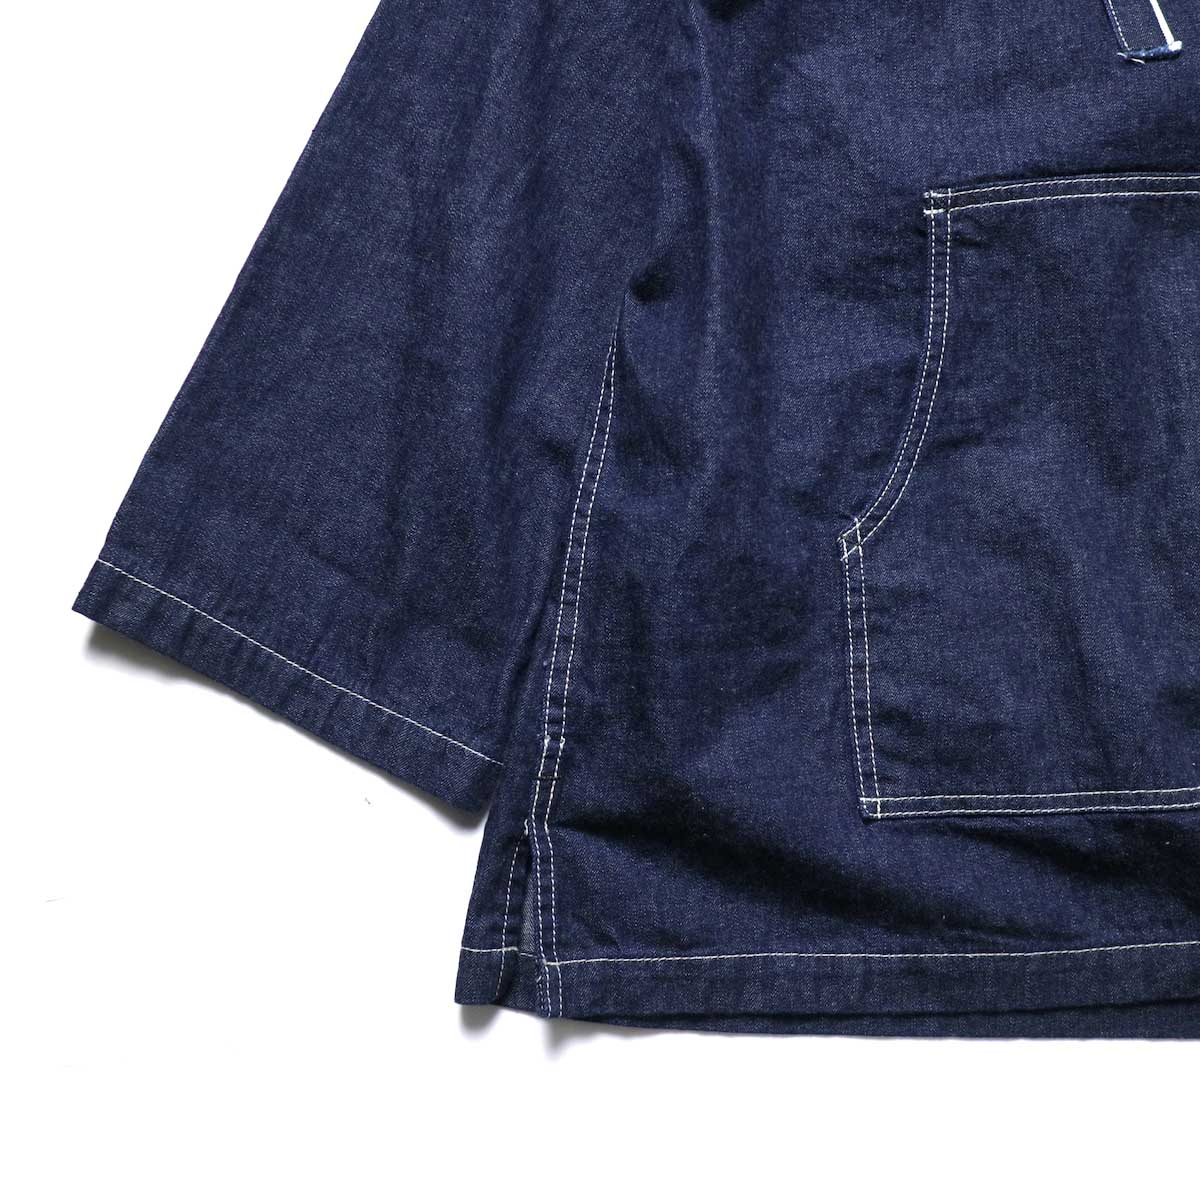 MexiPa / Selvage Denim Mexican Parker 袖、裾